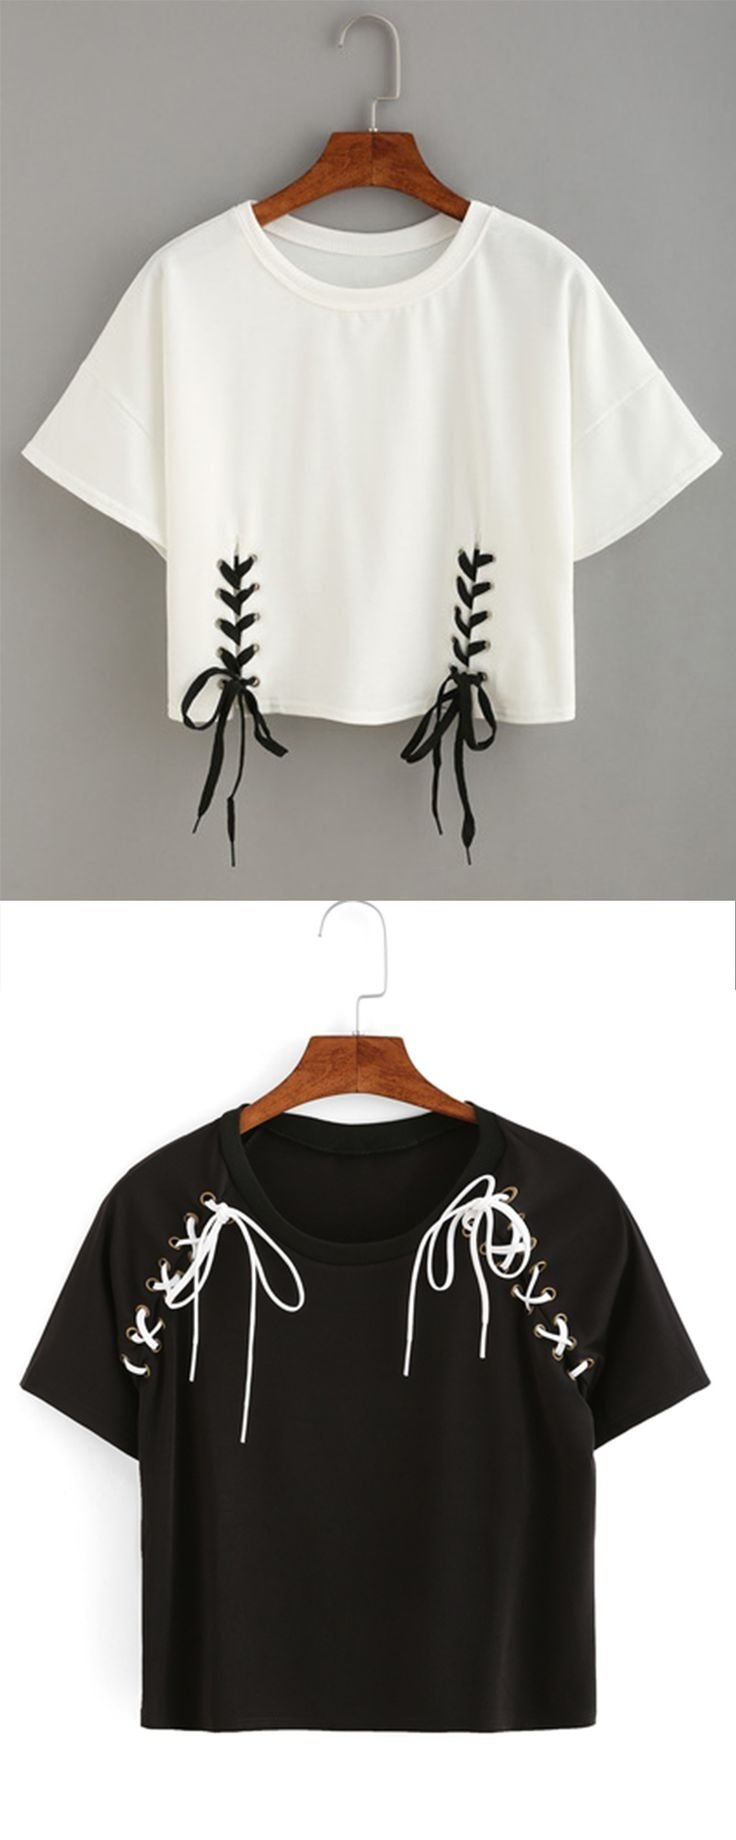 10 Attractive Cool T Shirt Cutting Ideas 29 best t shirt images on pinterest clothing apparel printed tees 2021